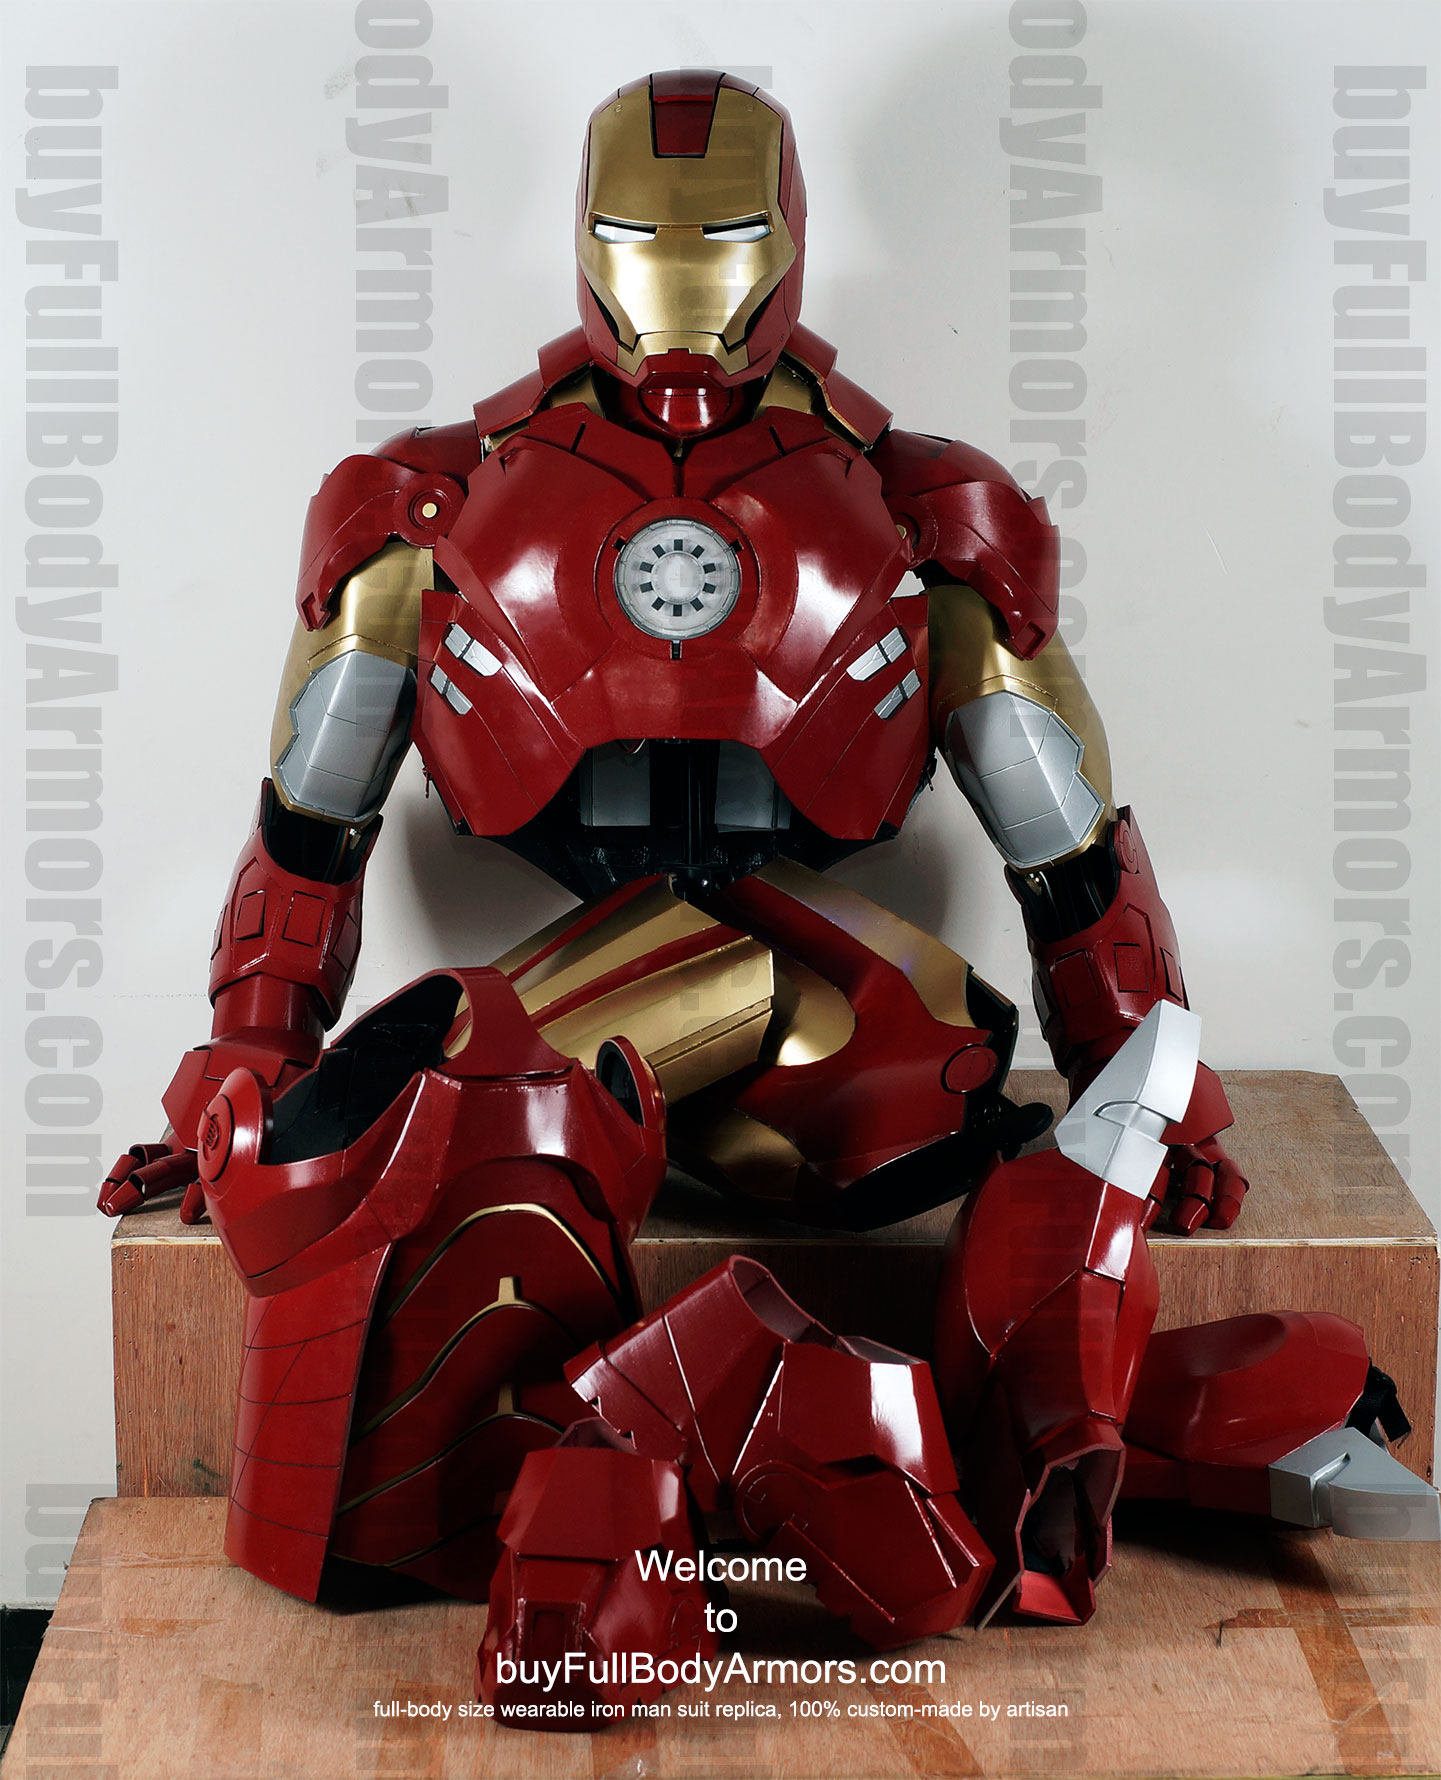 buy iron man suit halo master chief armor batman costume star wars armor iron man suit. Black Bedroom Furniture Sets. Home Design Ideas